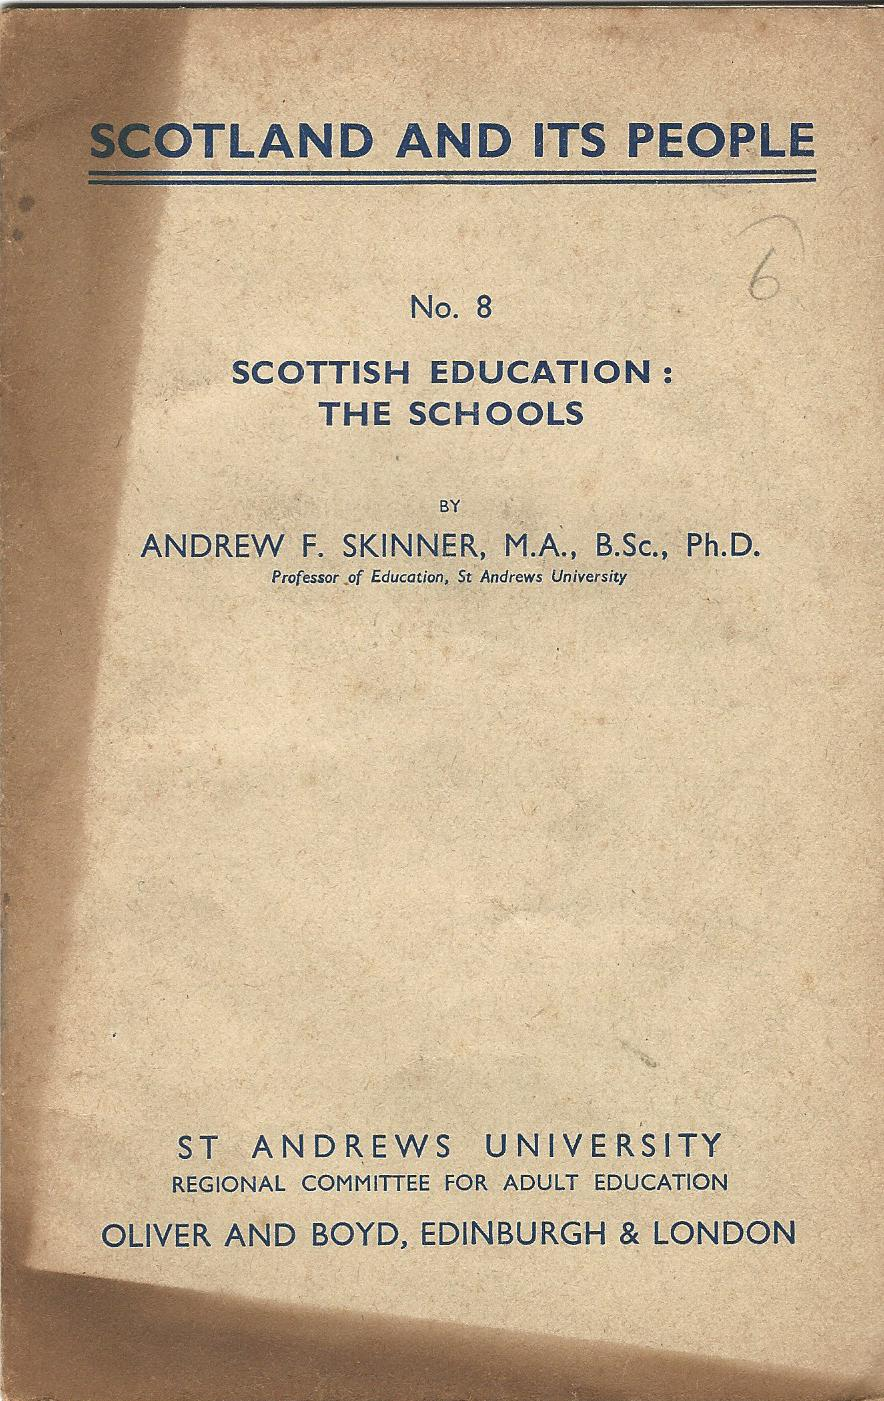 Image for Scotland and its People No. 8: Scottish Education: The Schools